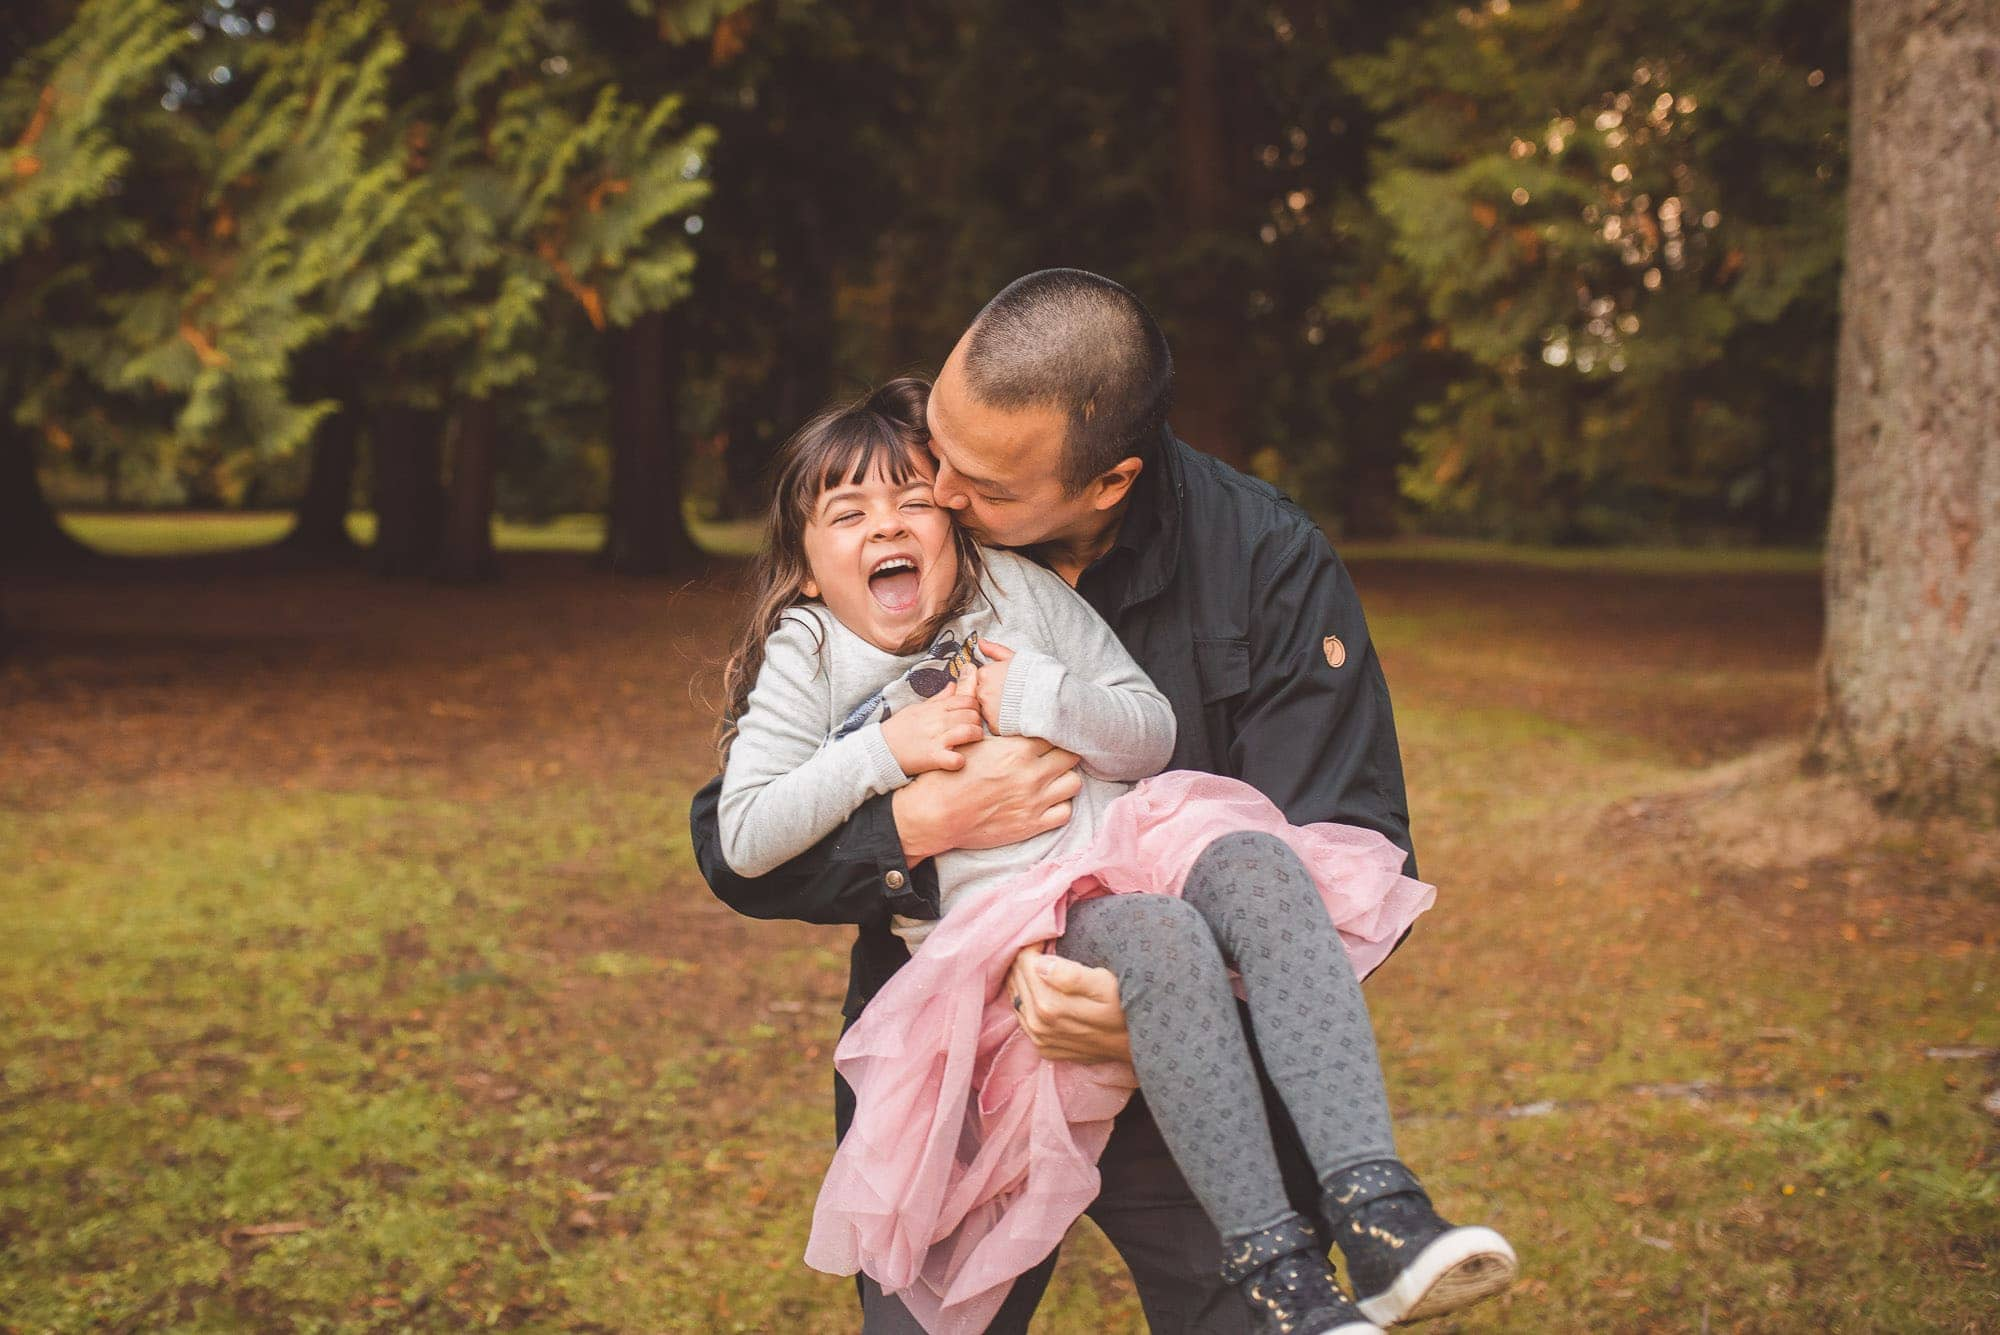 Vancouver Family Photographer tells dad to tickle daughter during photo session